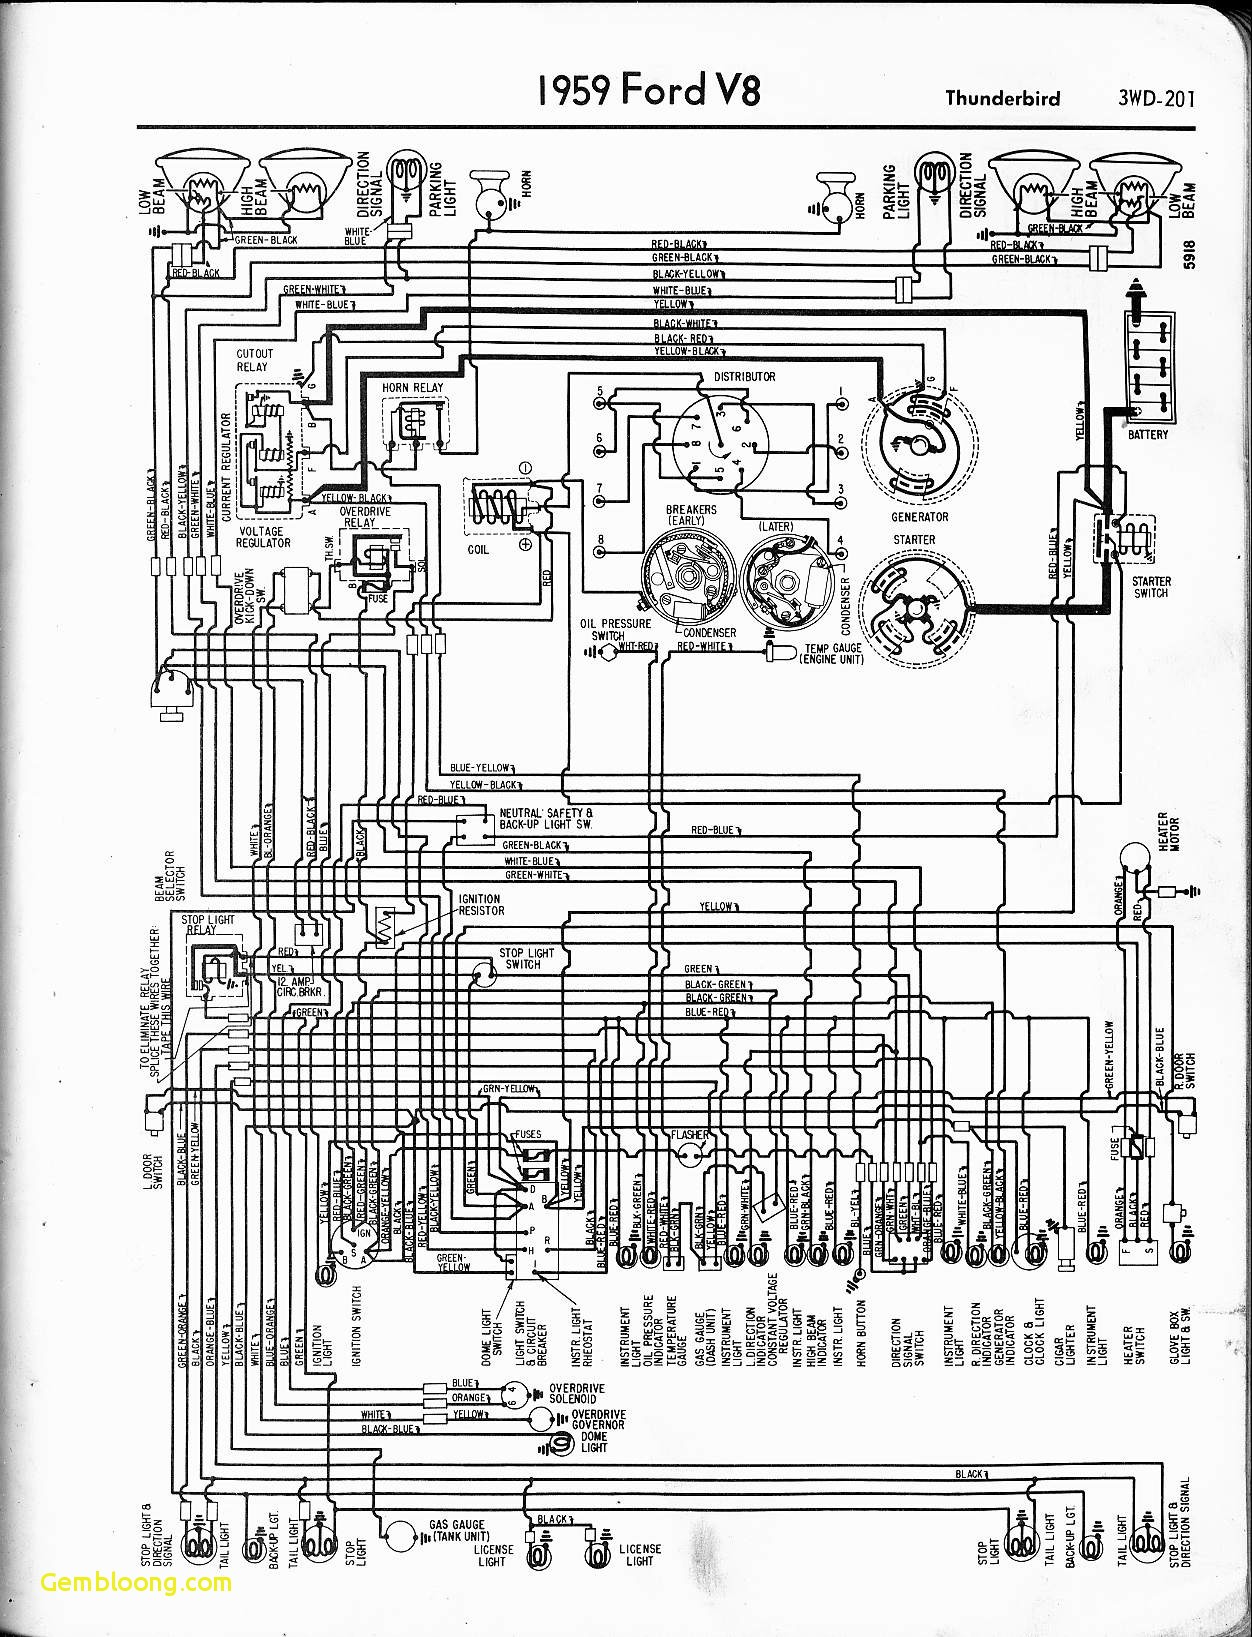 Free Wiring Diagrams for Dodge Trucks Truck Wiring Diagrams Free Of Free Wiring Diagrams for Dodge Trucks Dodge Truck Electrical Diagrams Schema Wiring Diagram